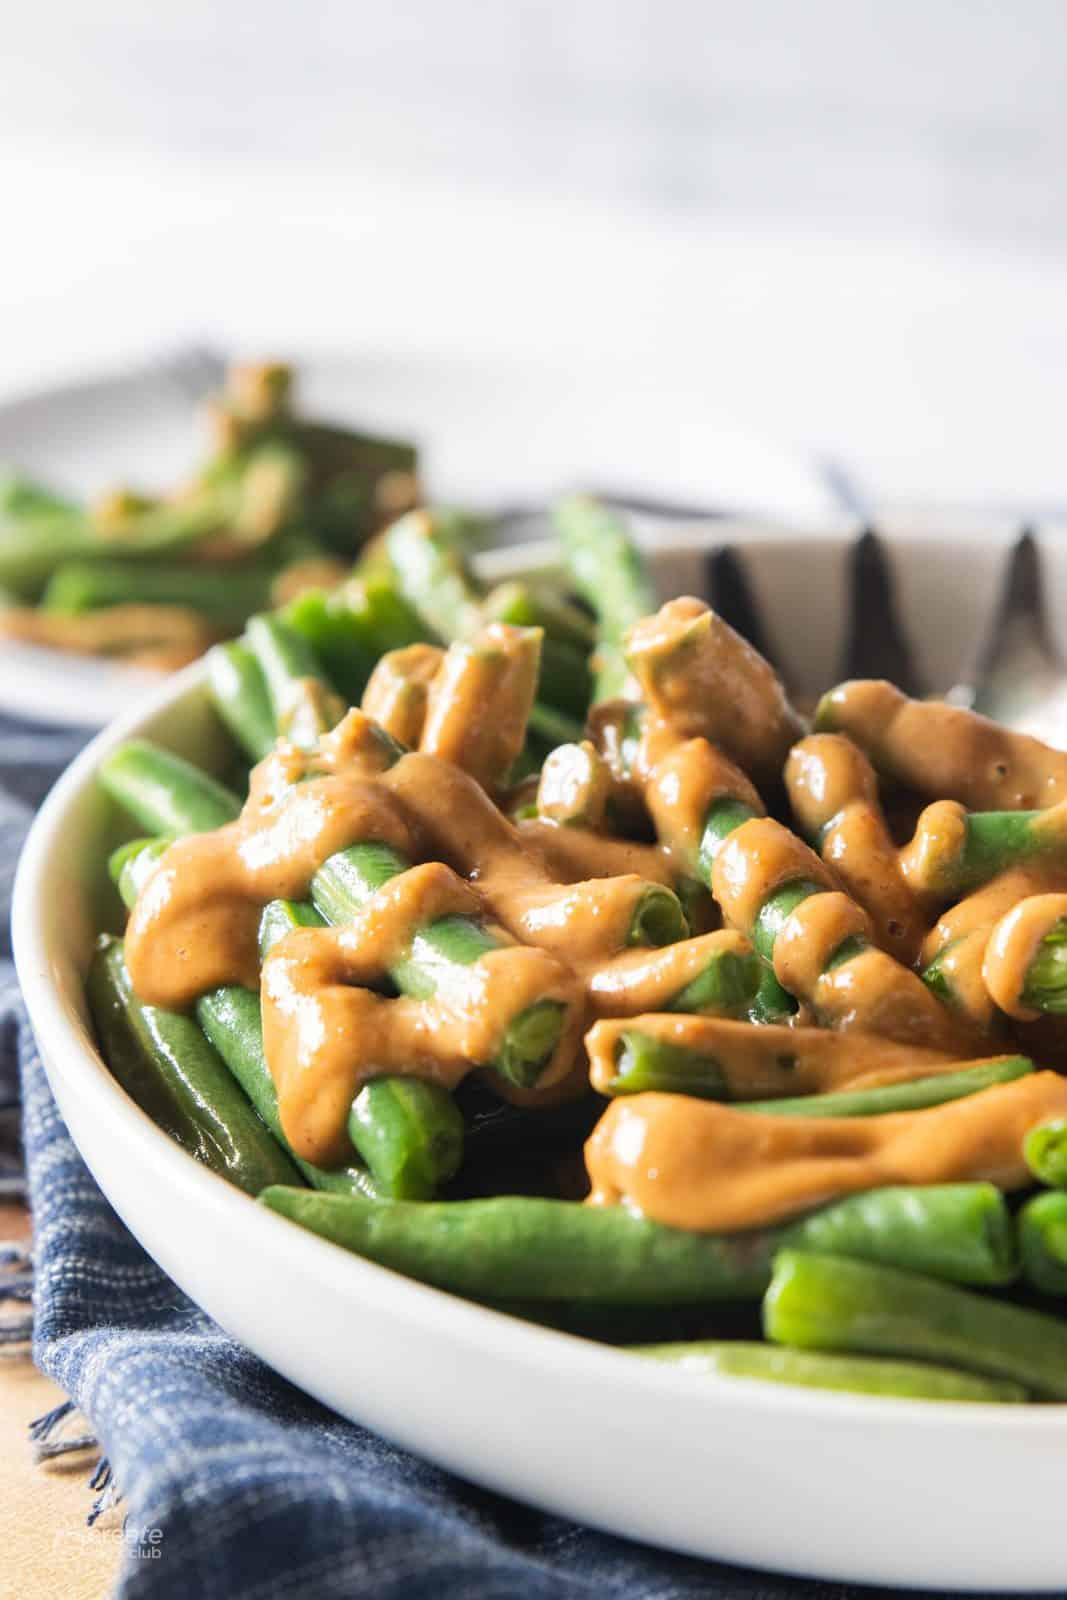 peanut sauce drizzled over green beans